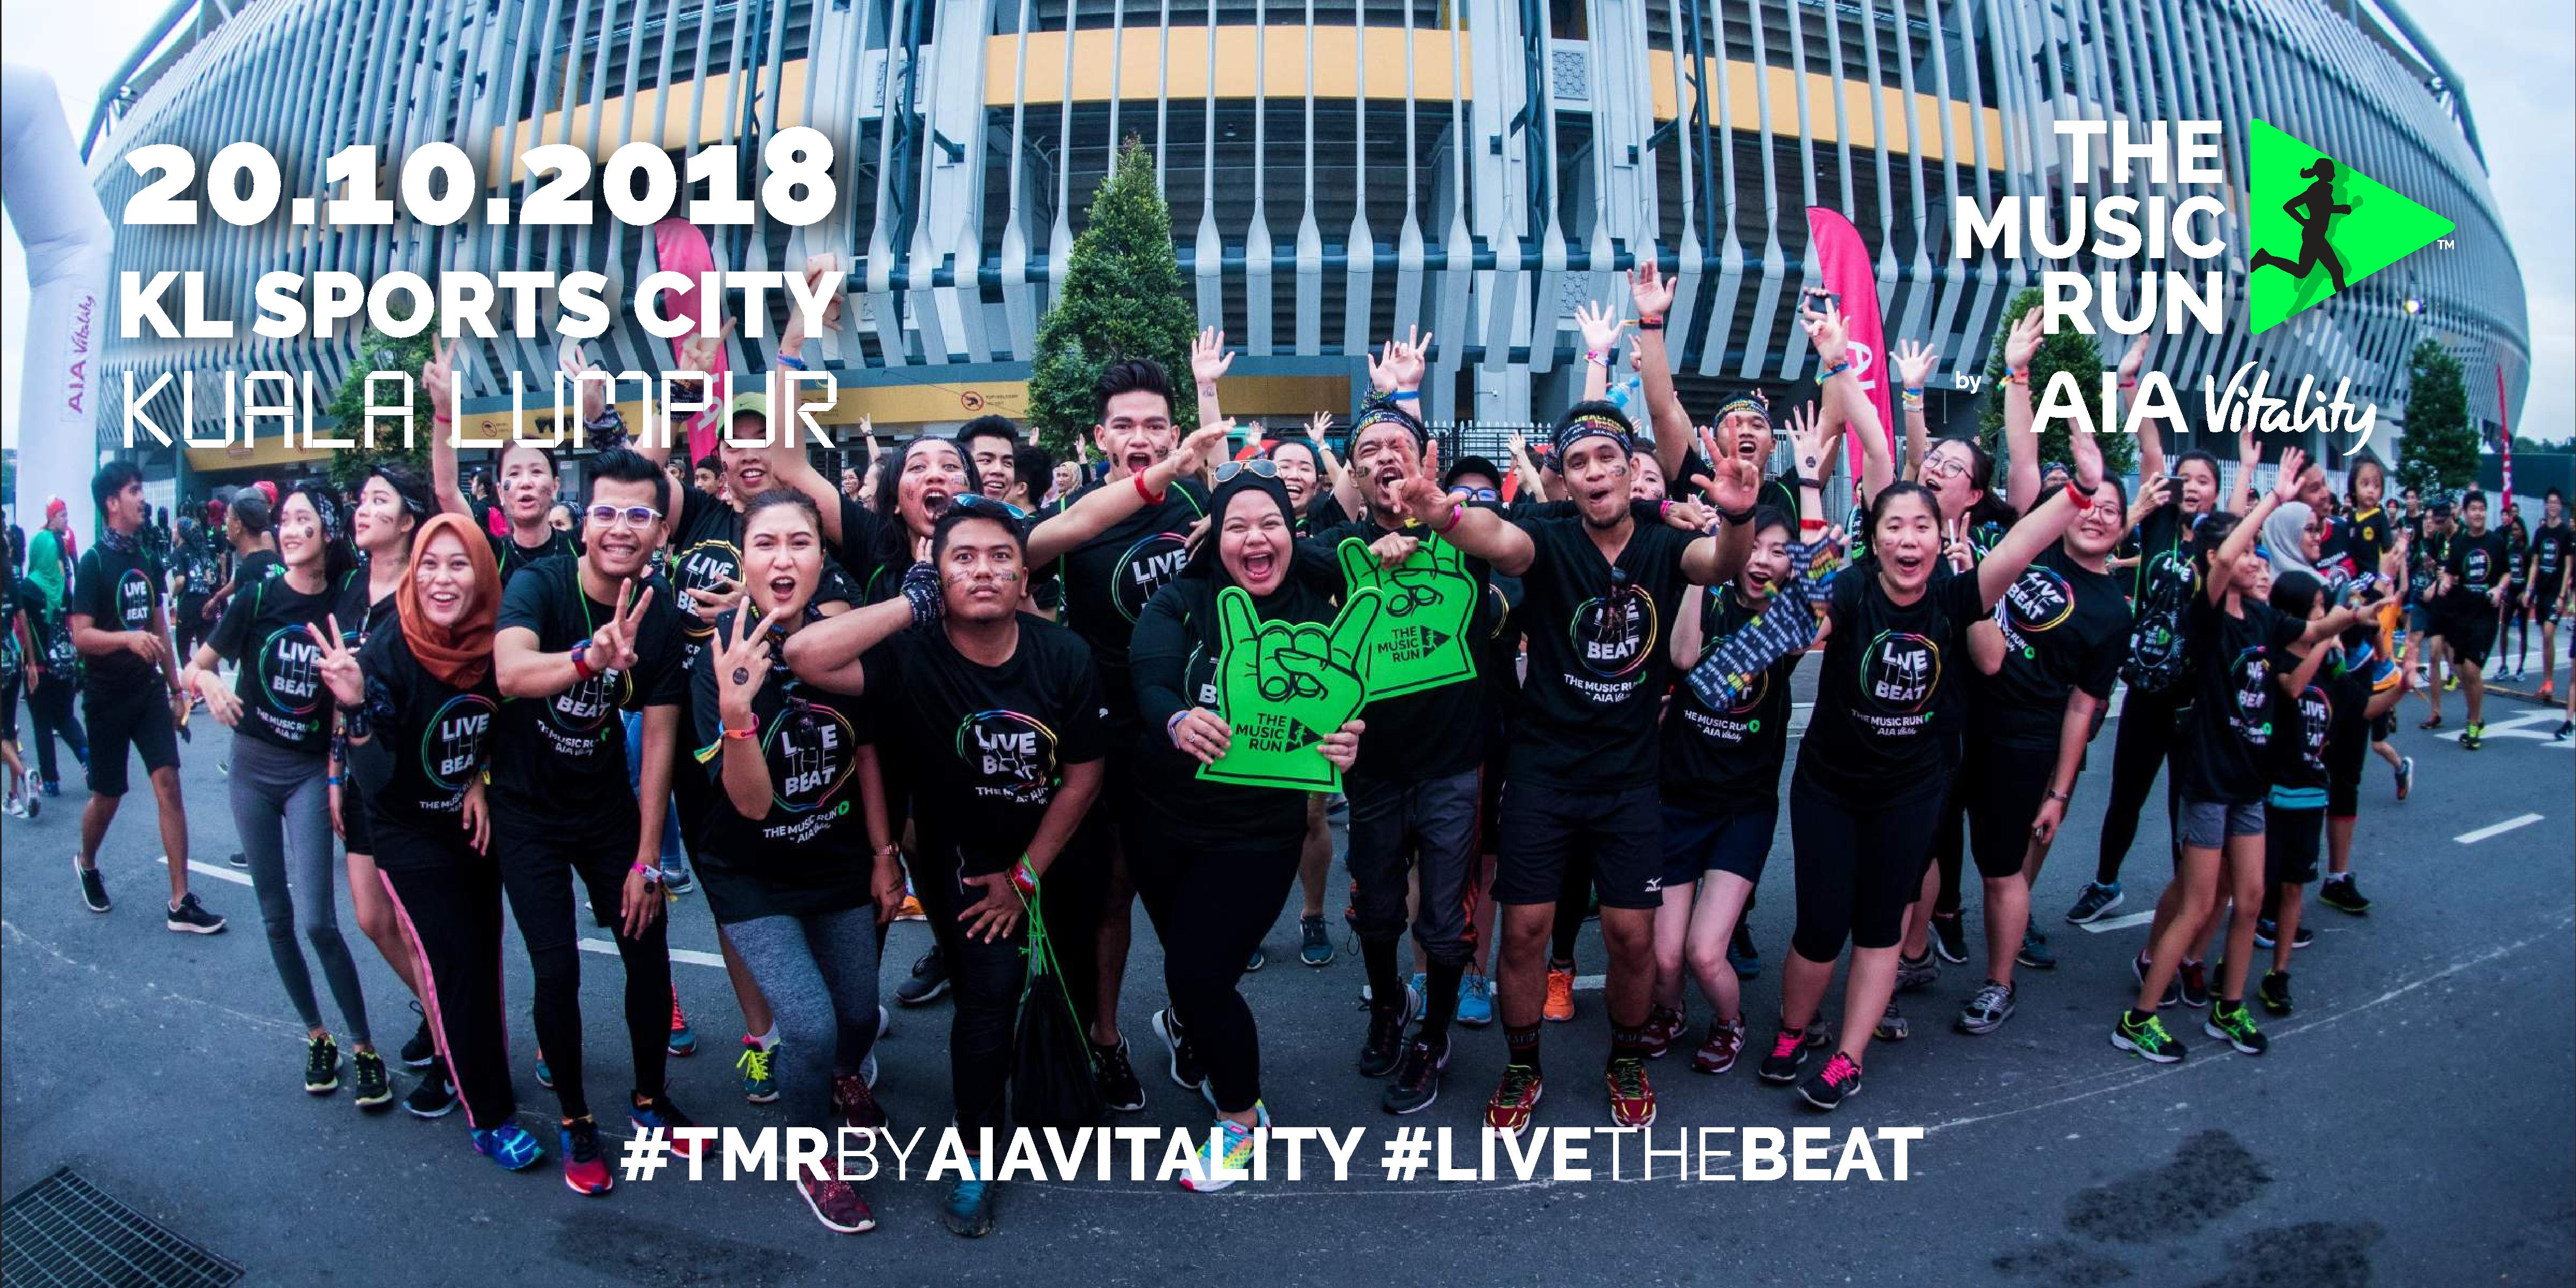 The Music Run by AIA Vitality 2018